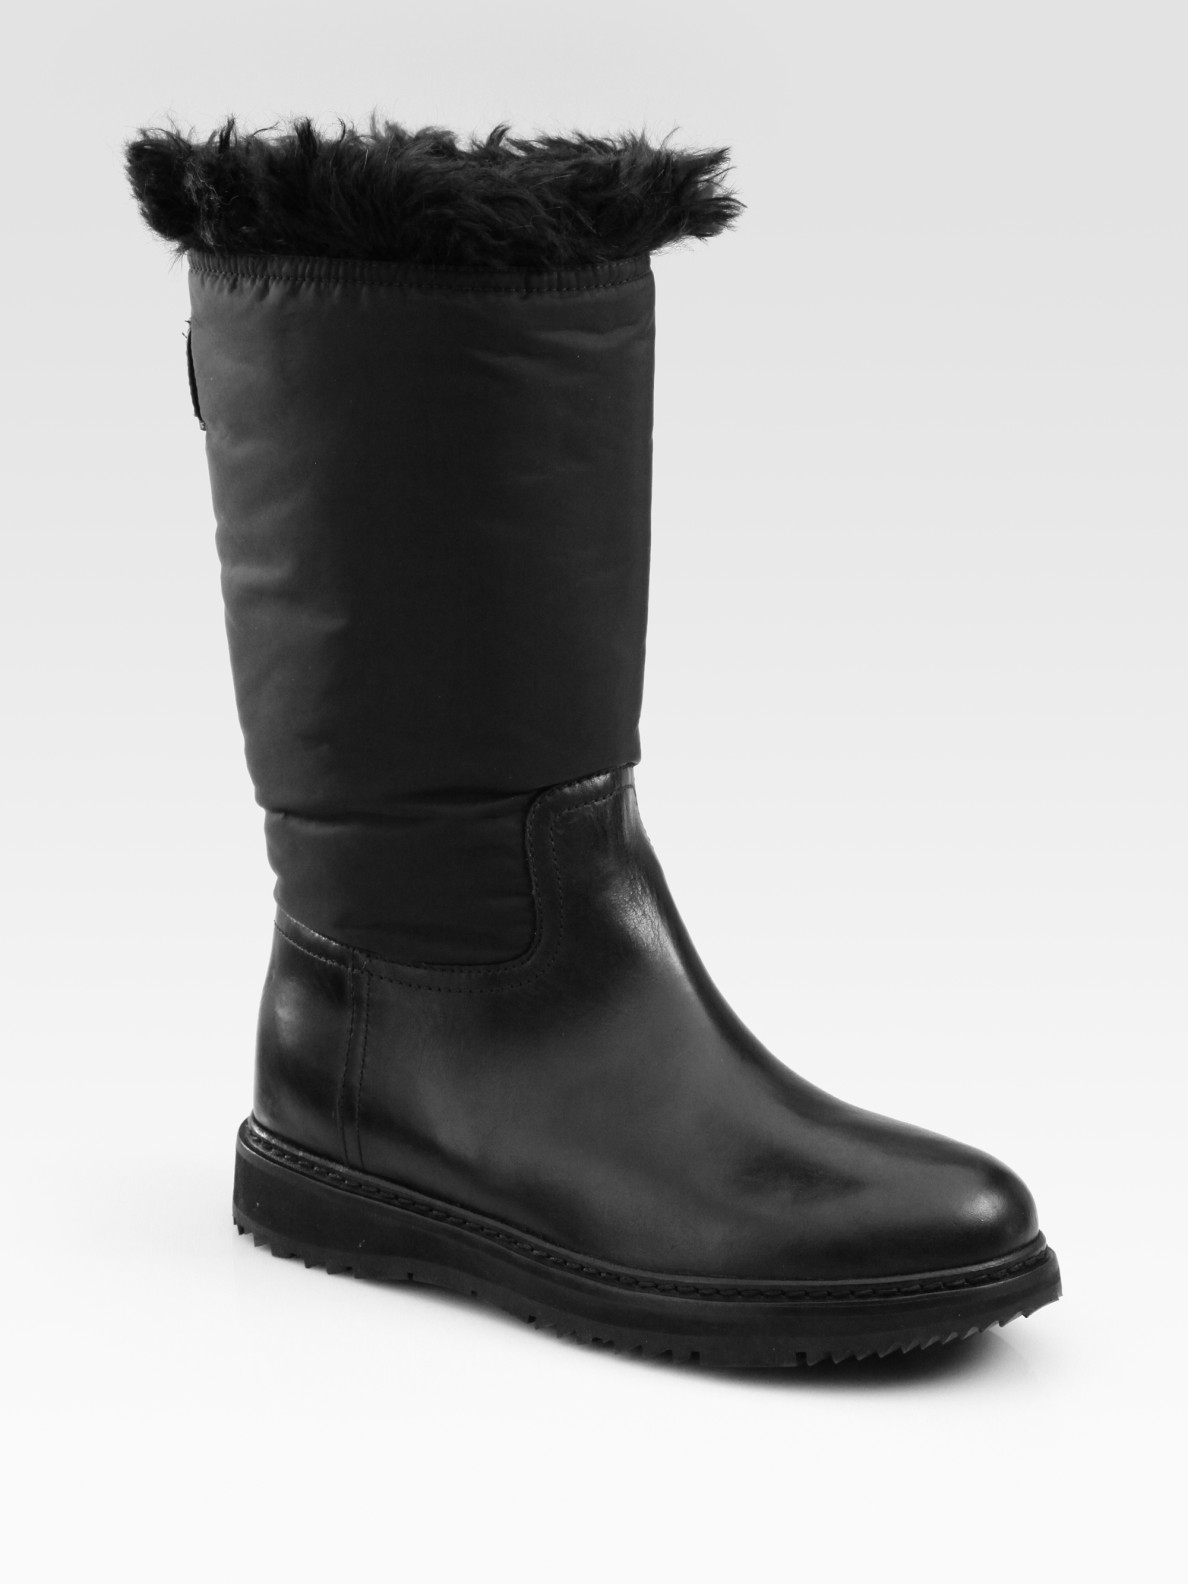 prada leather and mid calf faux fur lined boots in